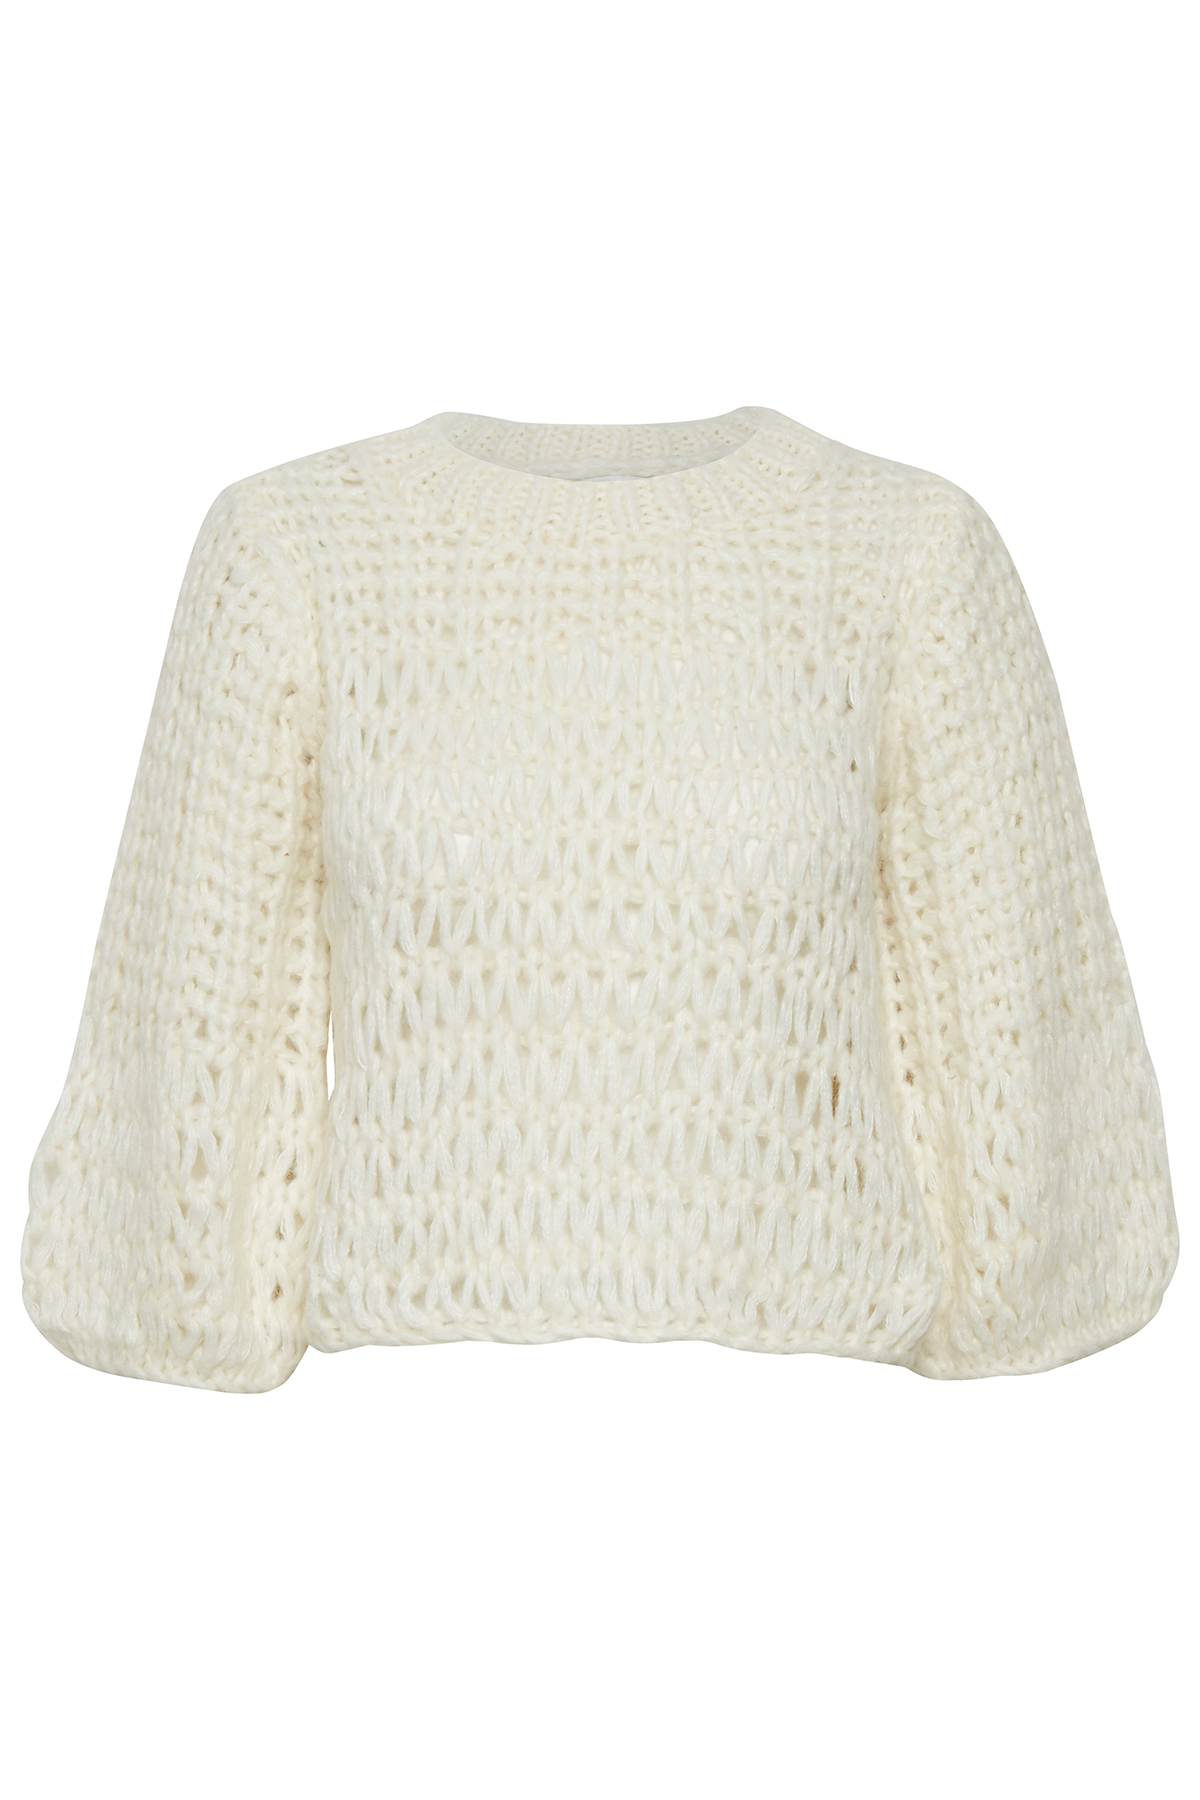 Image of   GESTUZ SAHARGZ PULLOVER 10903939 (Cloud Dancer 90075, L)